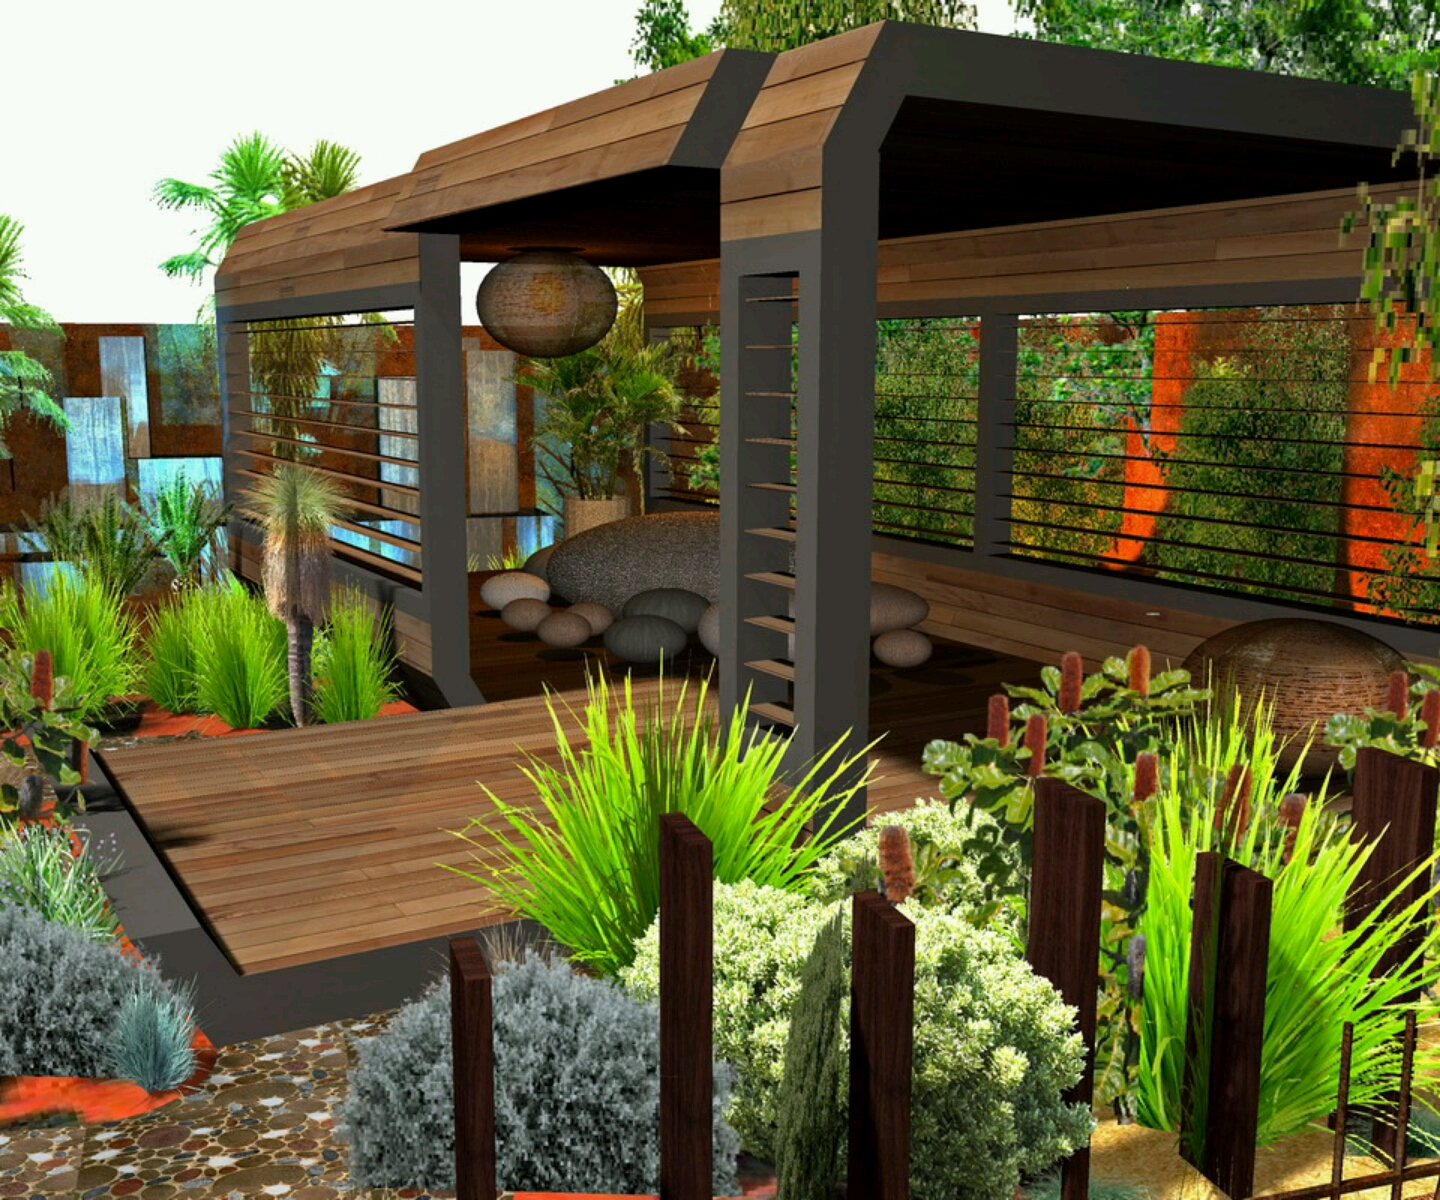 New home designs latest modern homes garden designs ideas for Design my garden ideas